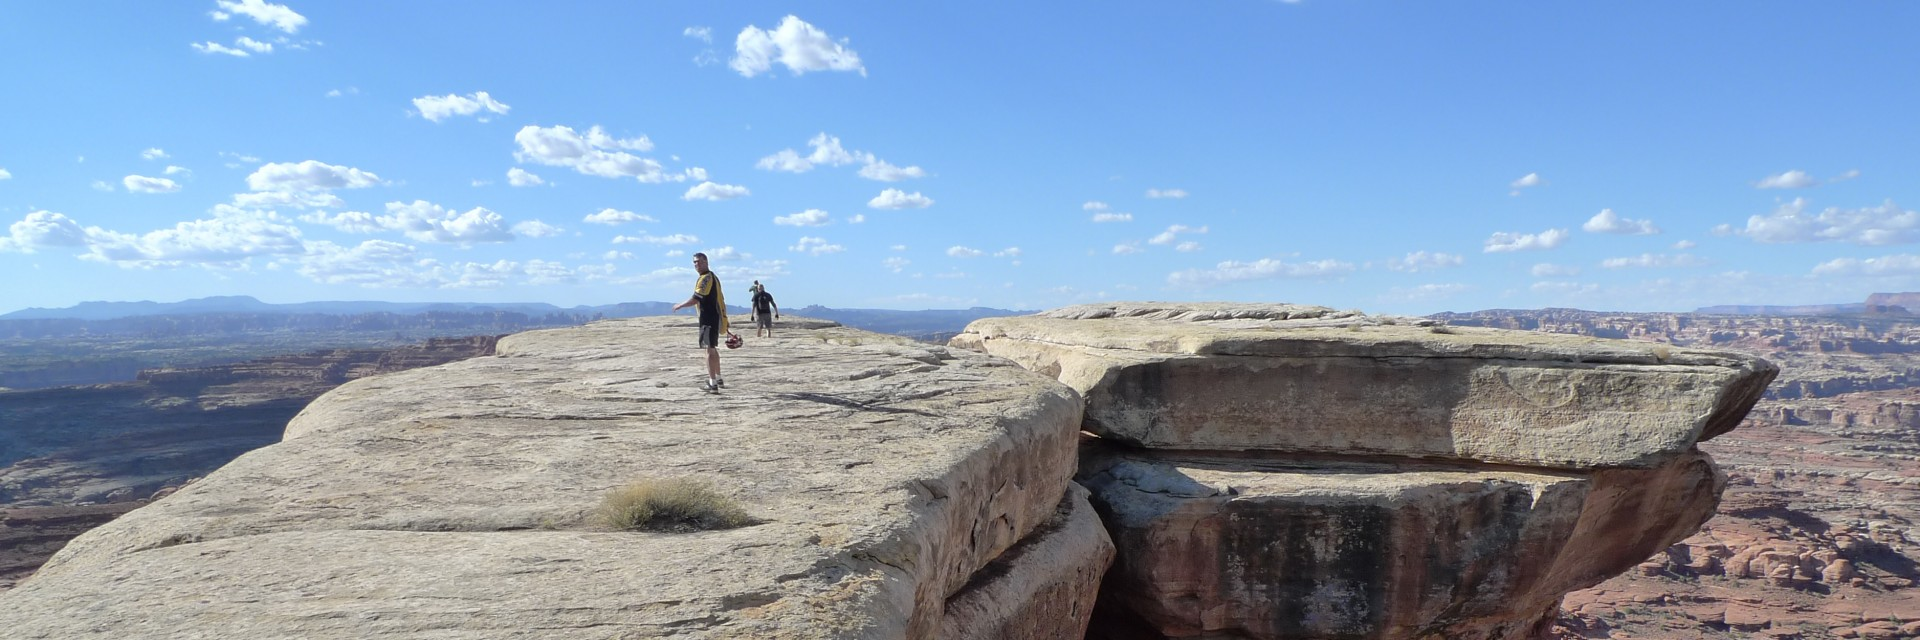 The White Rim Trail guided mountain bike tour includes lots of side hikes such as these folks are enjoying